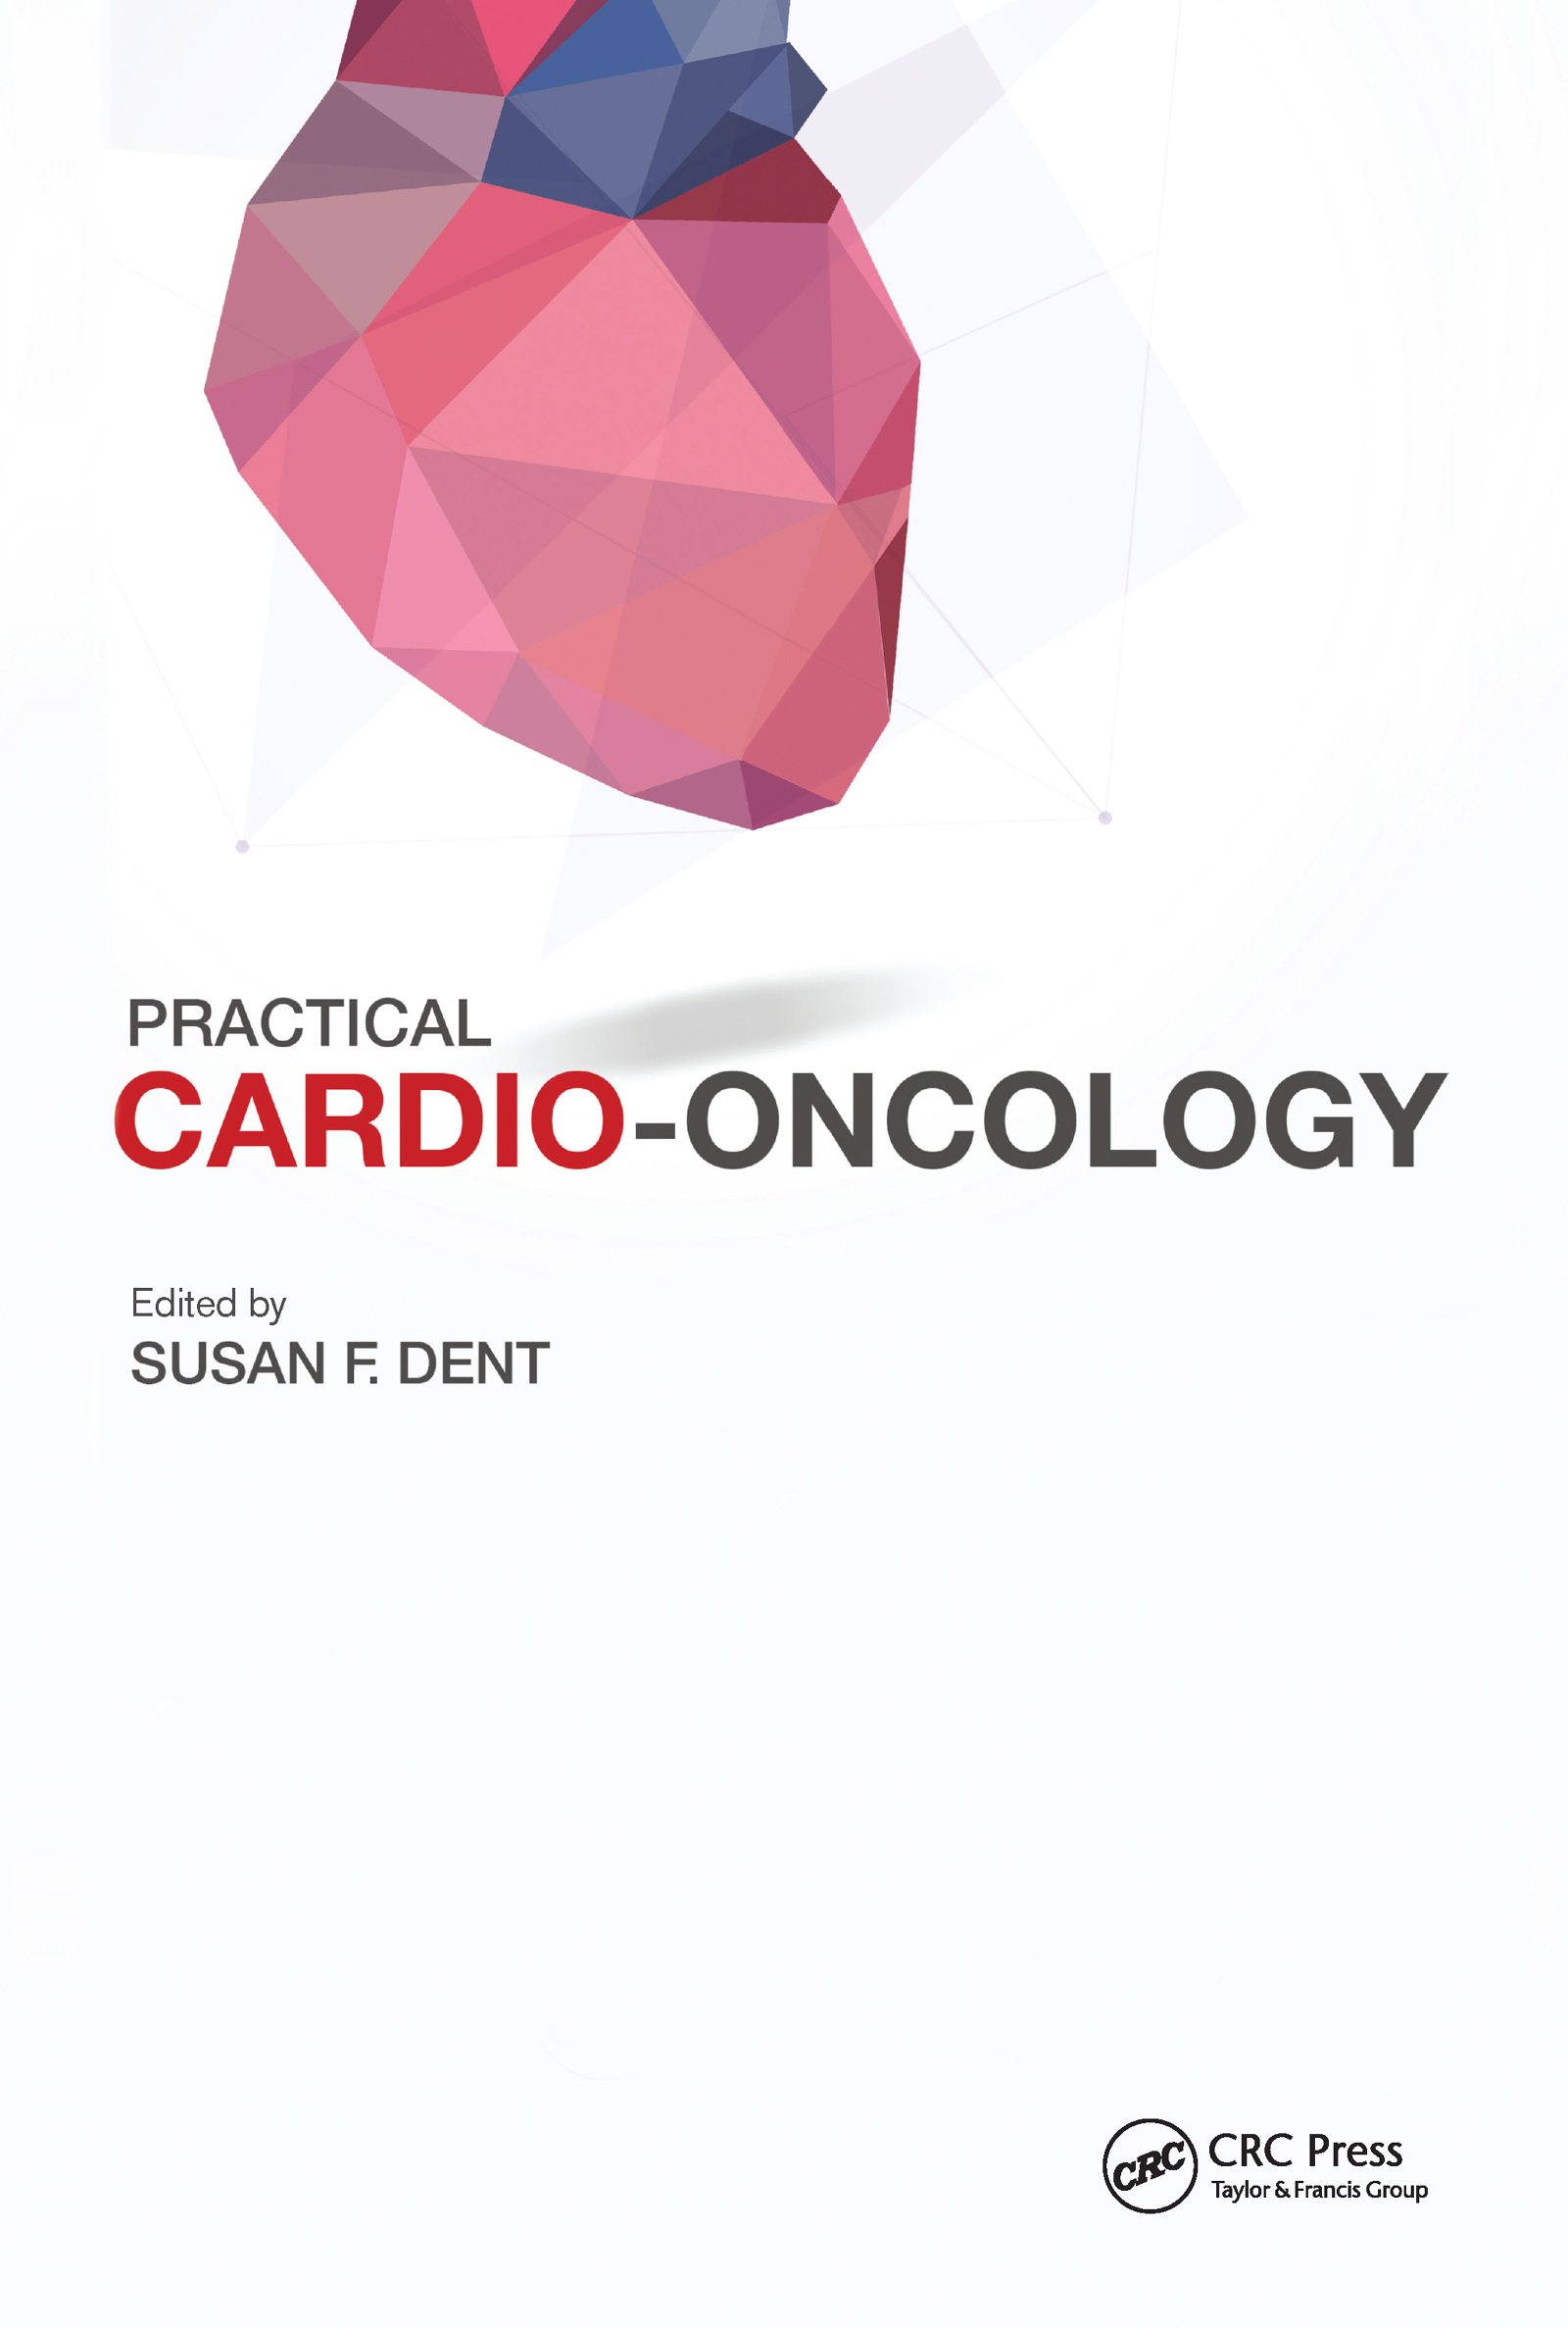 Practical Cardio-Oncology